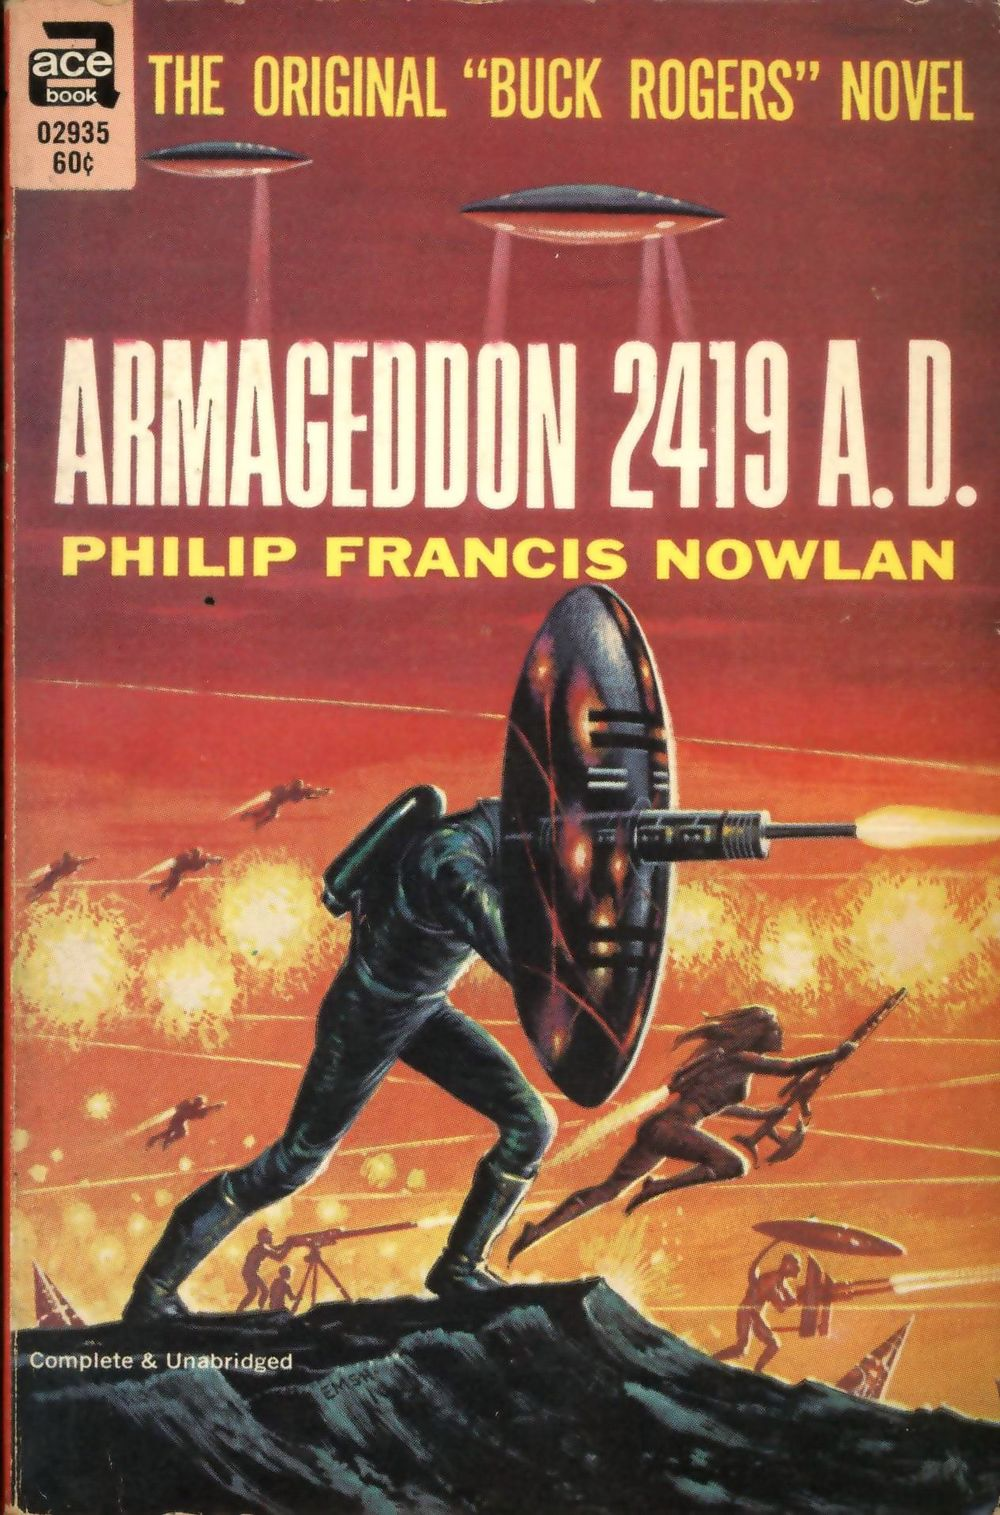 Reprint edition from the 1960s, which combines Armageddon 2419 A.D. and The Airlords of Han.